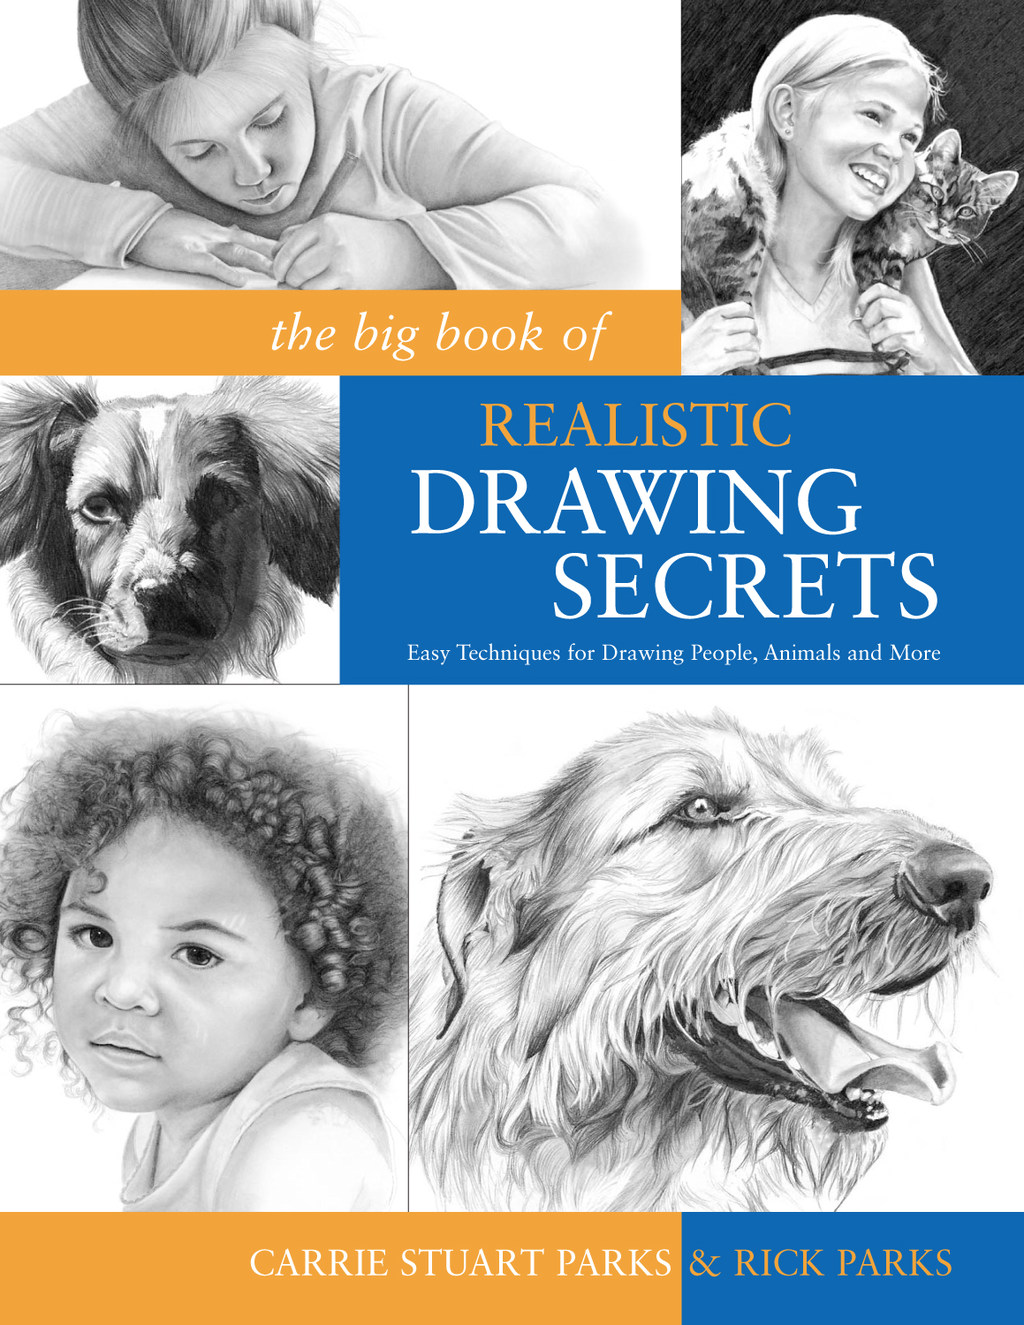 The Big Book of Realistic Drawing Secrets Easy Techniques for drawing people,  animals,  flowers and nature